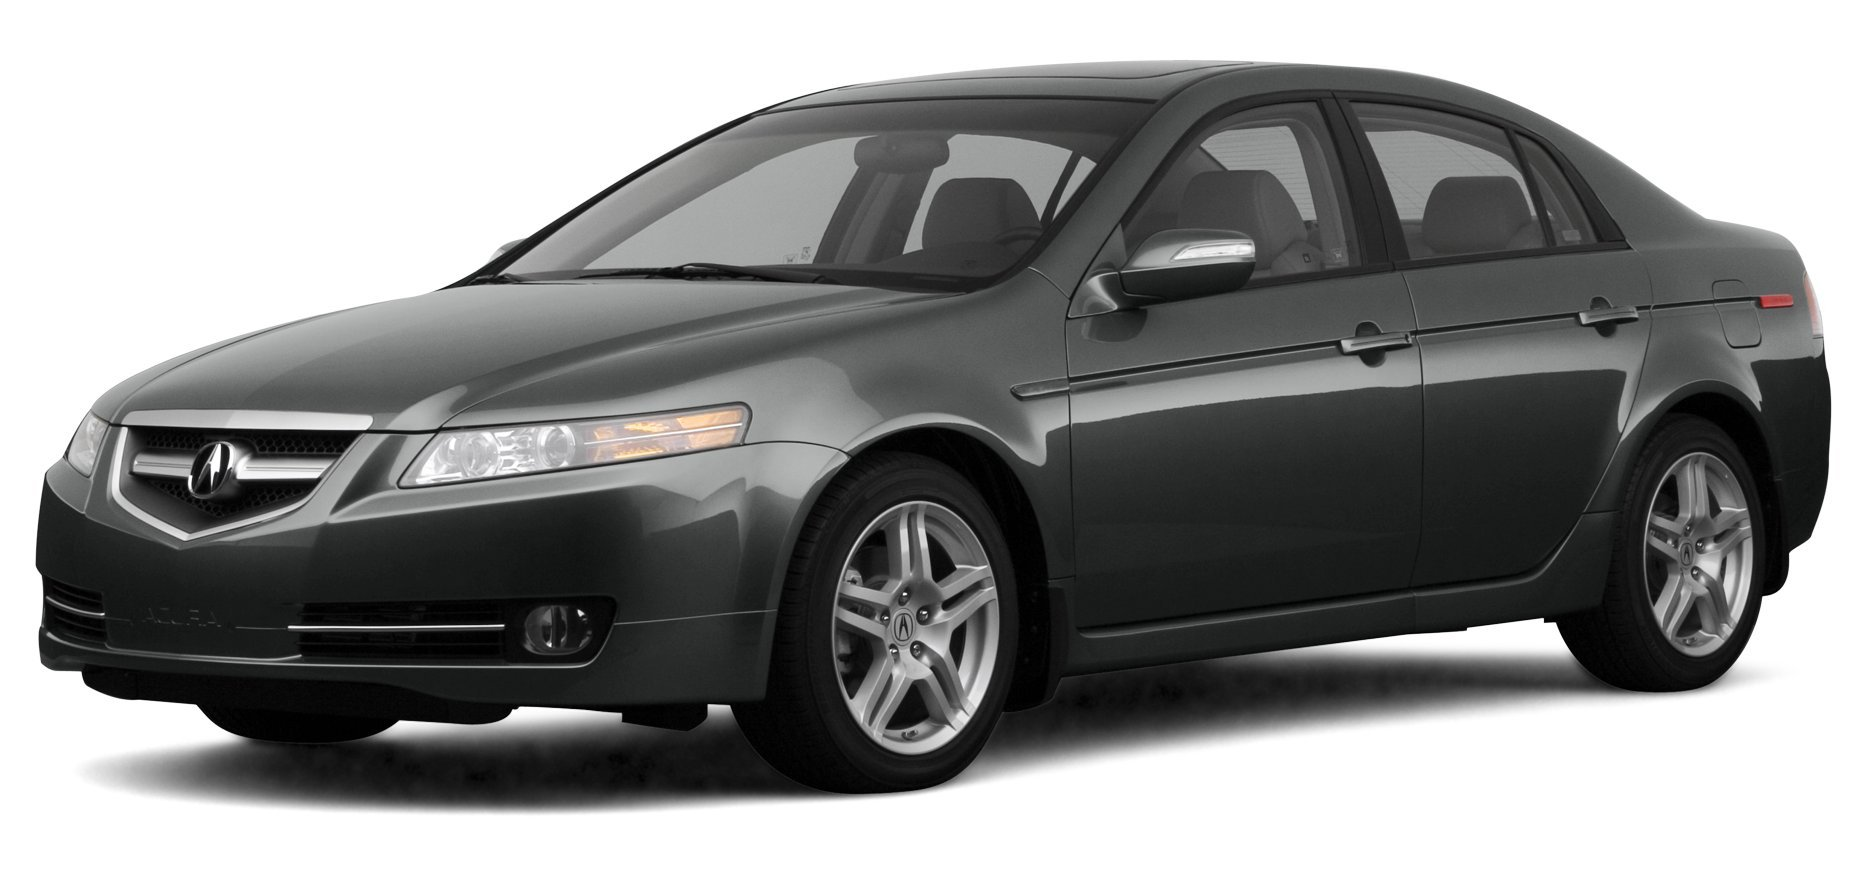 2007 Acura Tl Reviews Images And Specs Vehicles 2005 Vsa Light On 4 Door Sedan Automatic Transmission